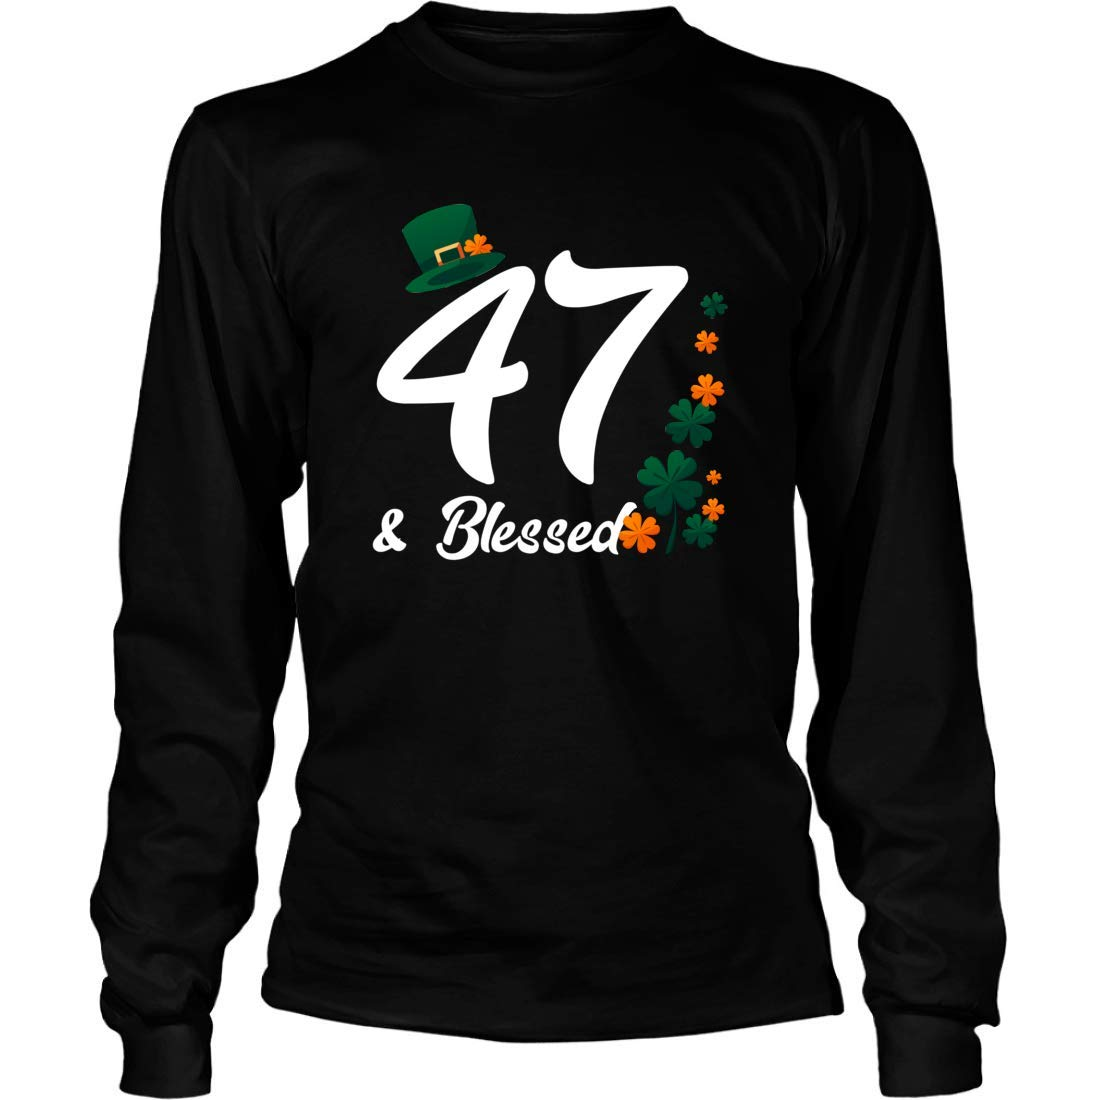 Mishozi 47th and Blessed Ireland Long Sleeve T-Shirt Unisex Shirts Gifts for 47th Birthday Irish